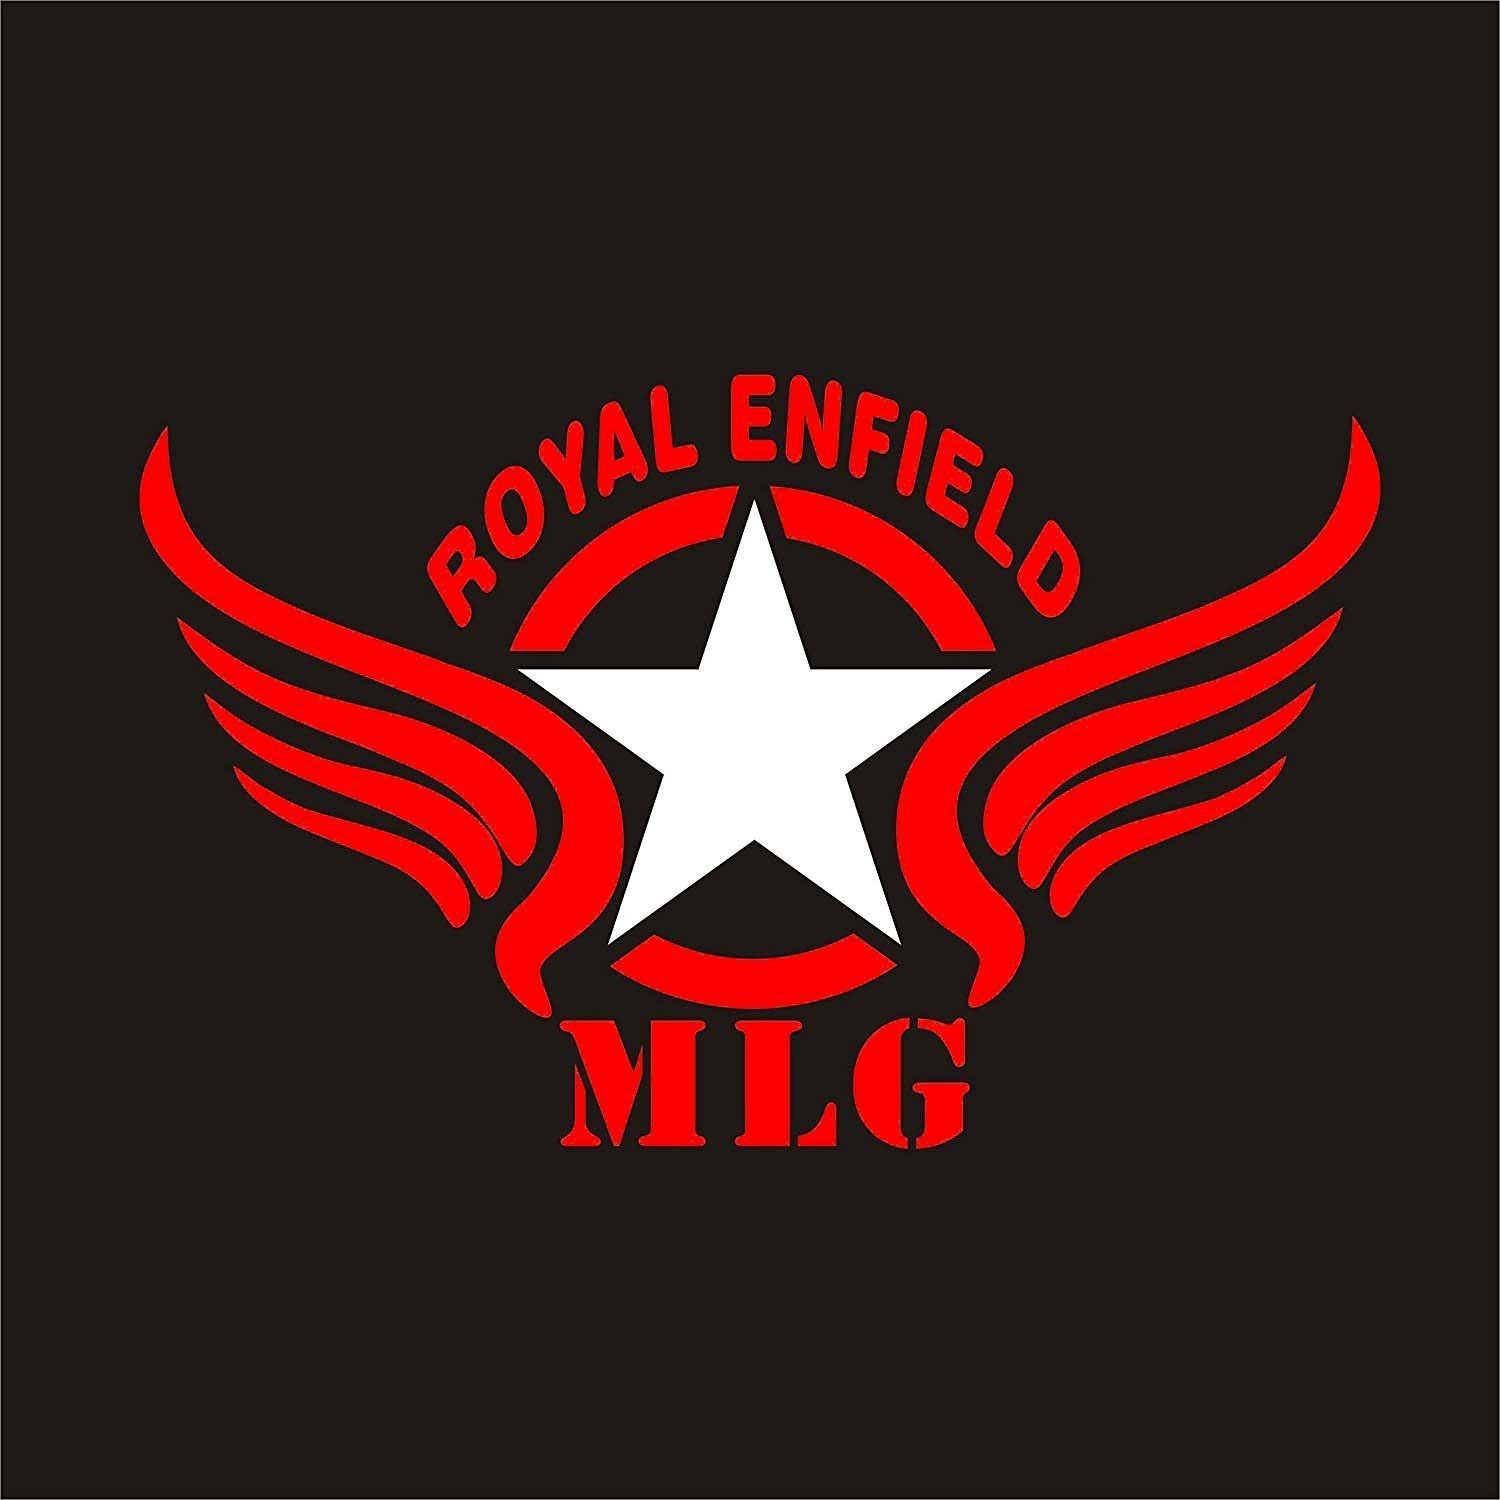 Star Wings E2 Customized Royal Enfield Sticker_ Red & White Standard Size For Sides Tank,Battery Cover